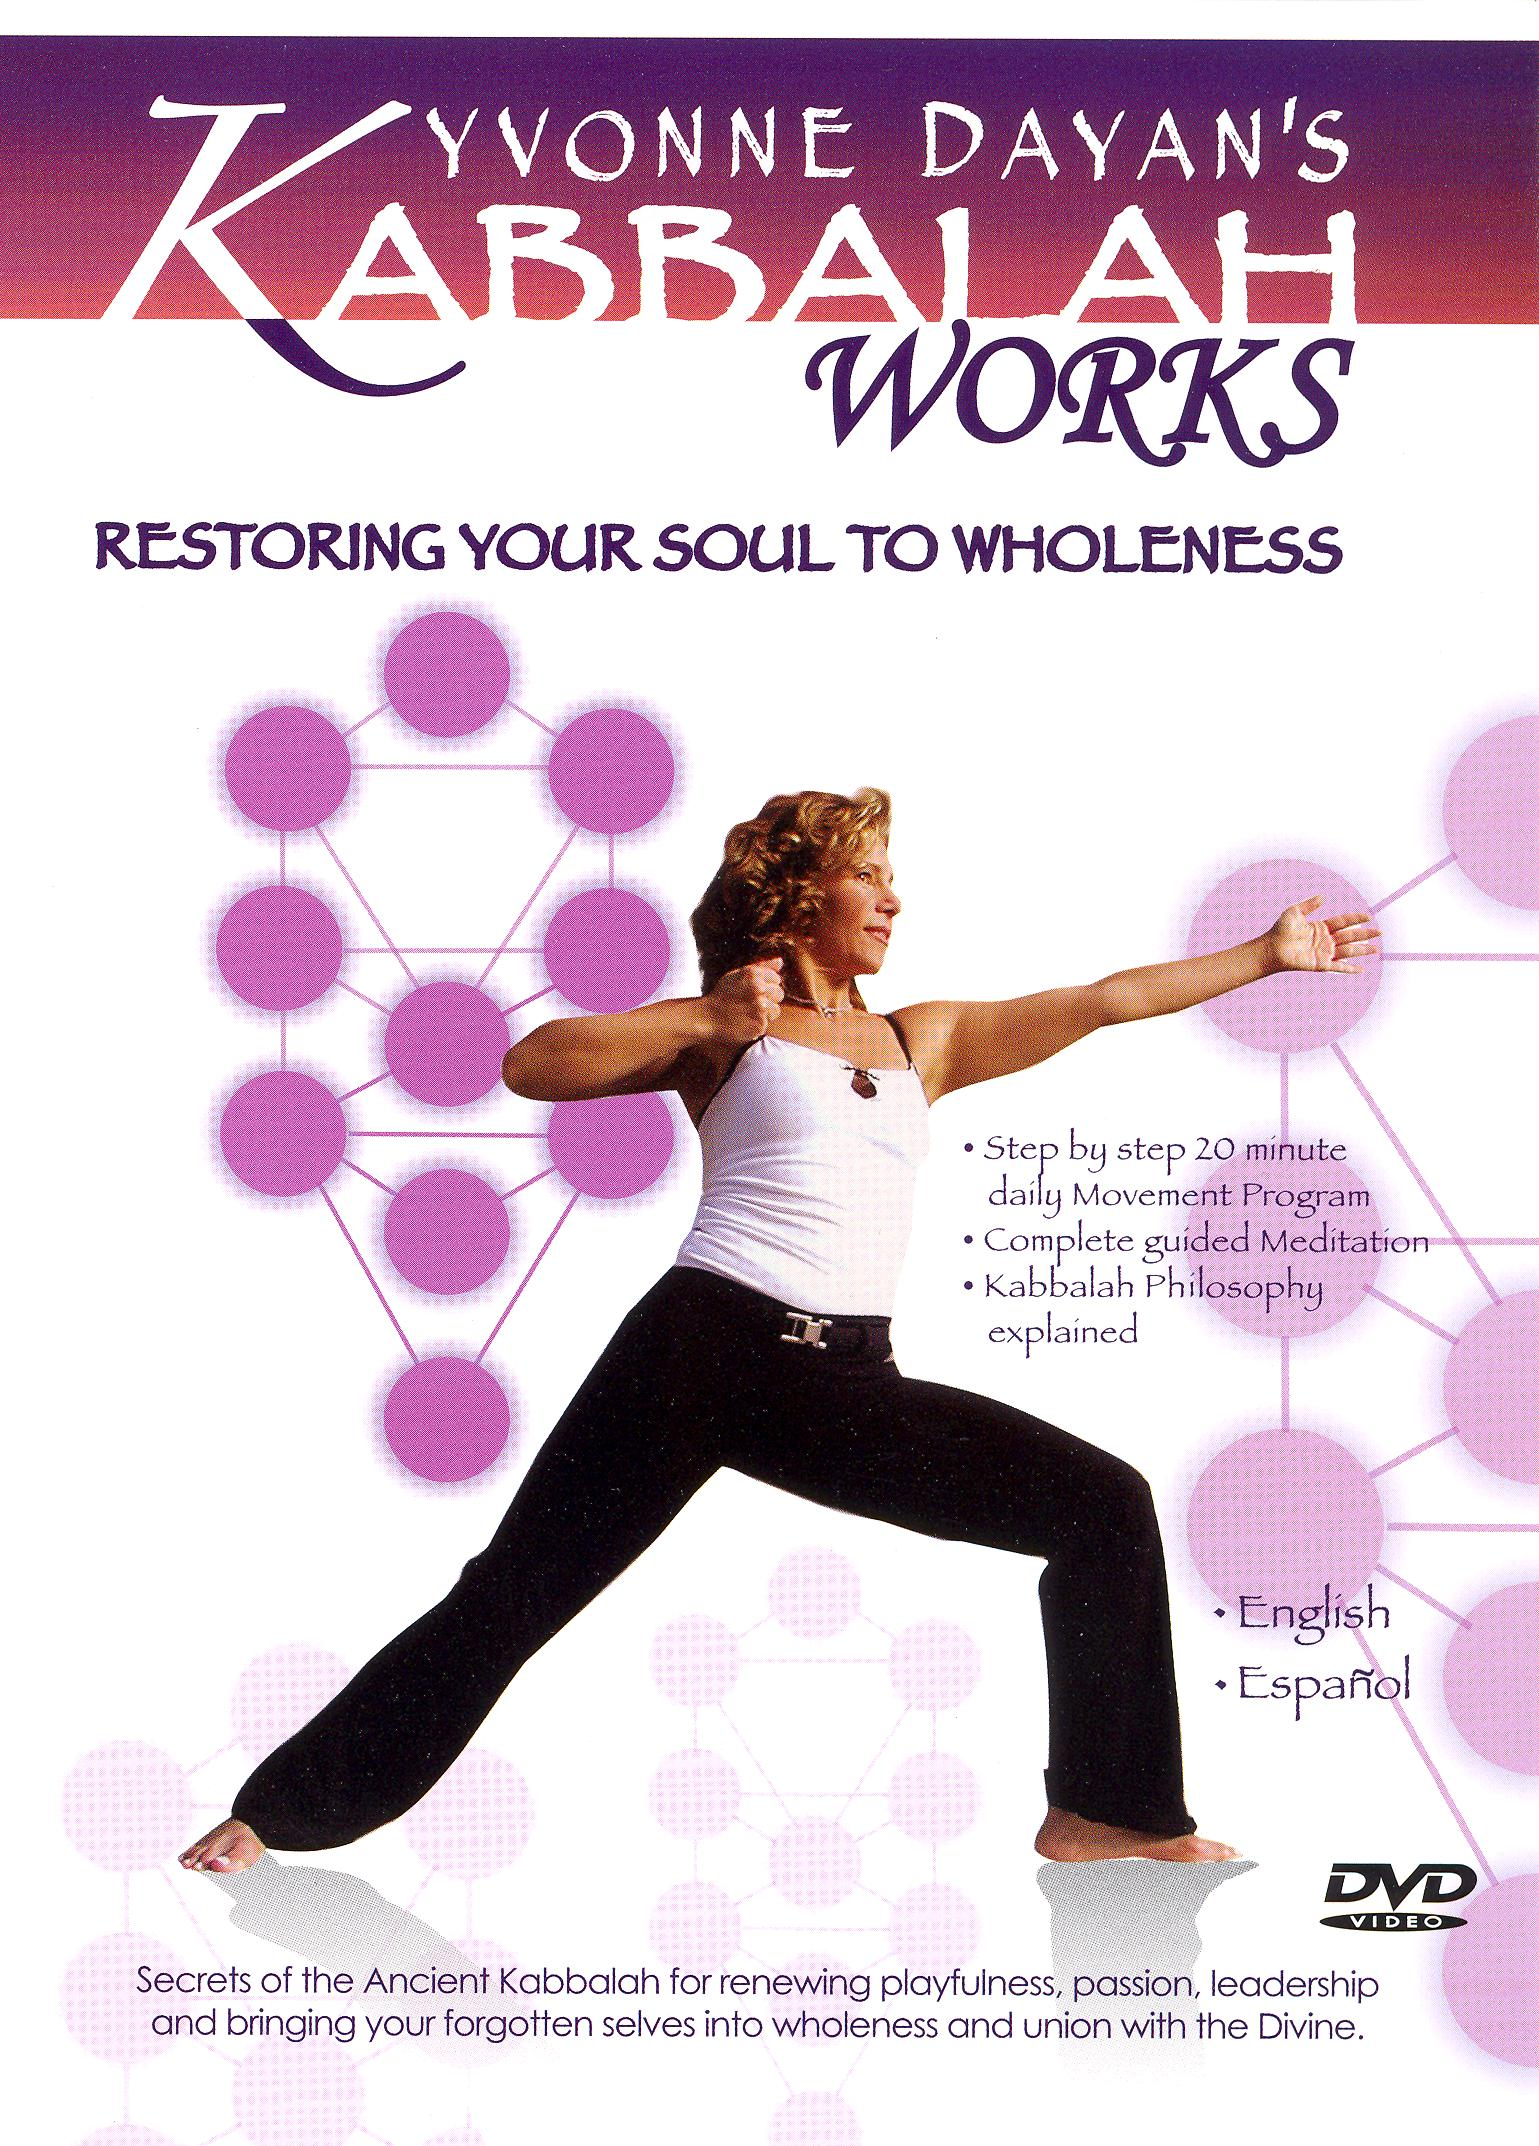 Kabbalah Yoga: Restoring Your Soul to Wholeness